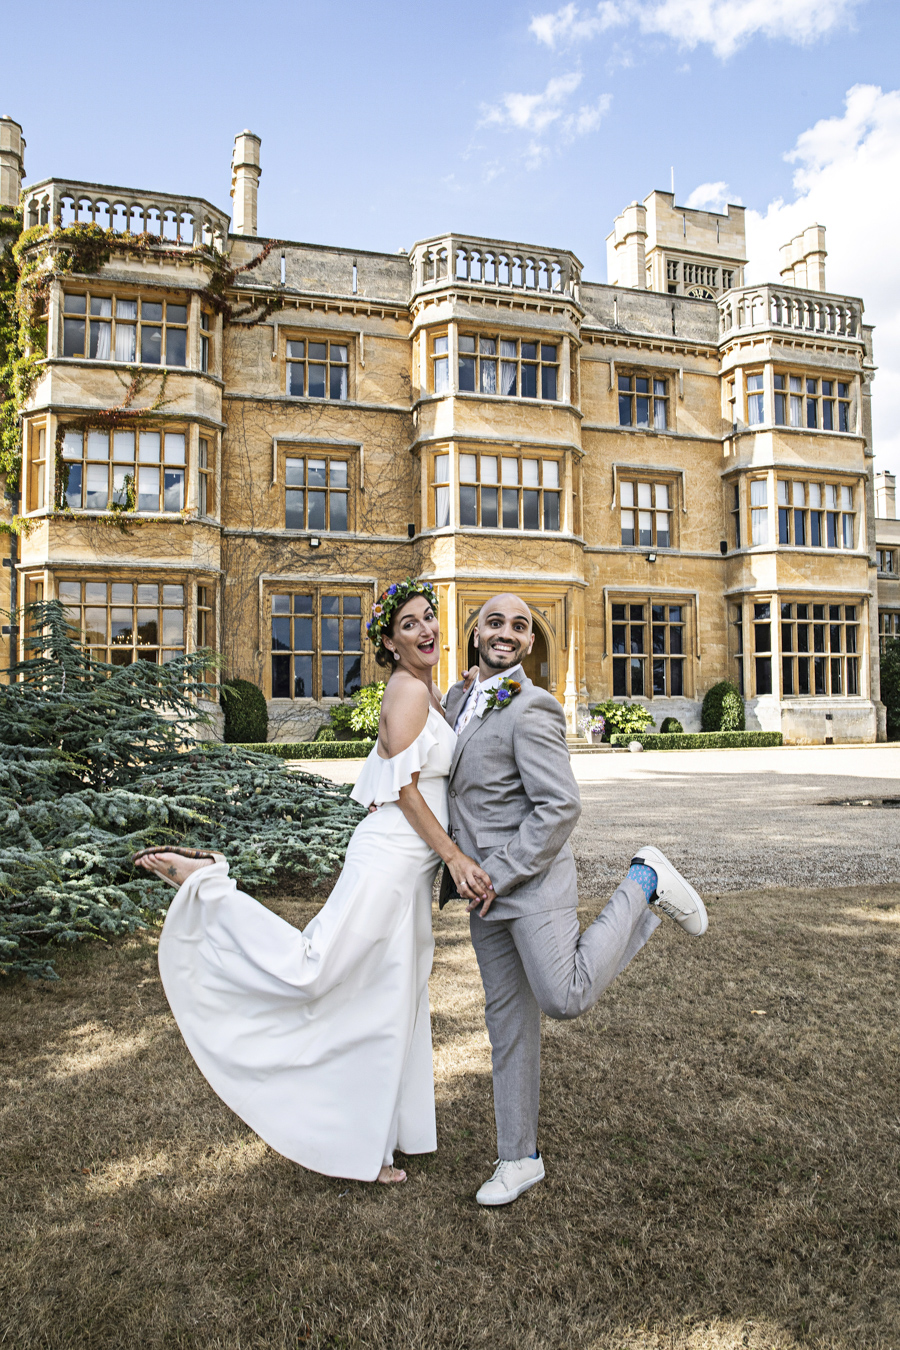 Andreia and Antonio's relaxed and fun wedding at Shuttleworth Swiss Garden with Lorna Newman Wedding Photography (17)